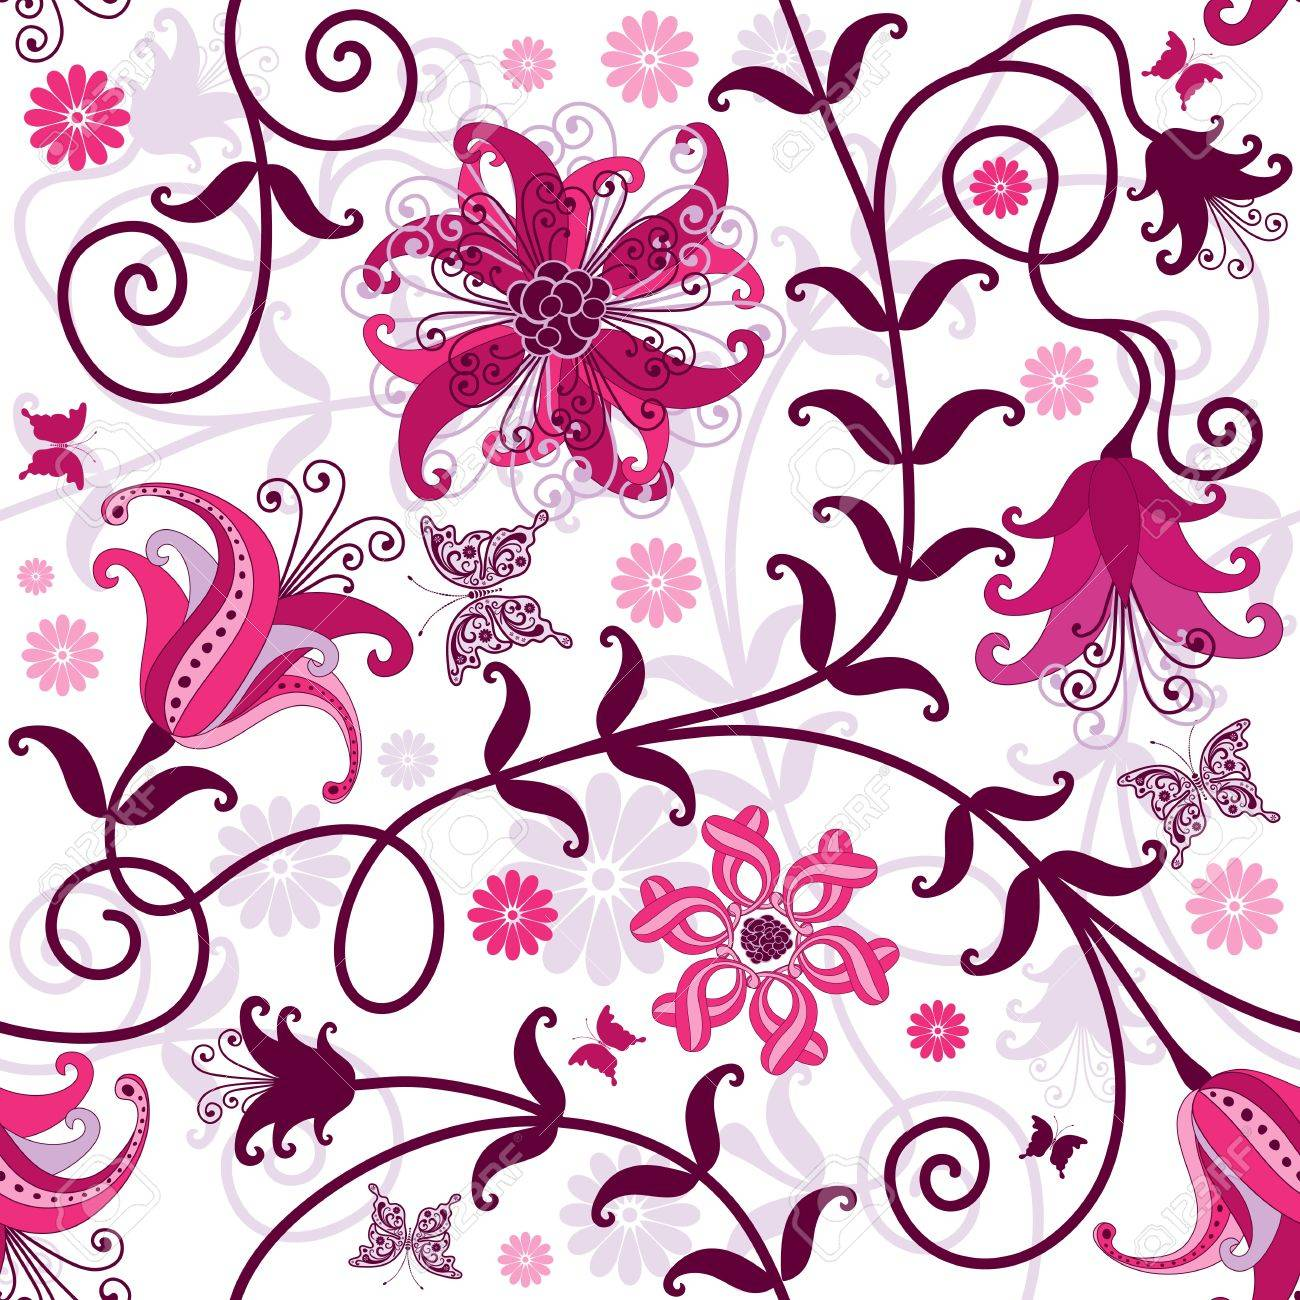 1300x1300 Seamless Floral Pattern With Pink Purple Flowers